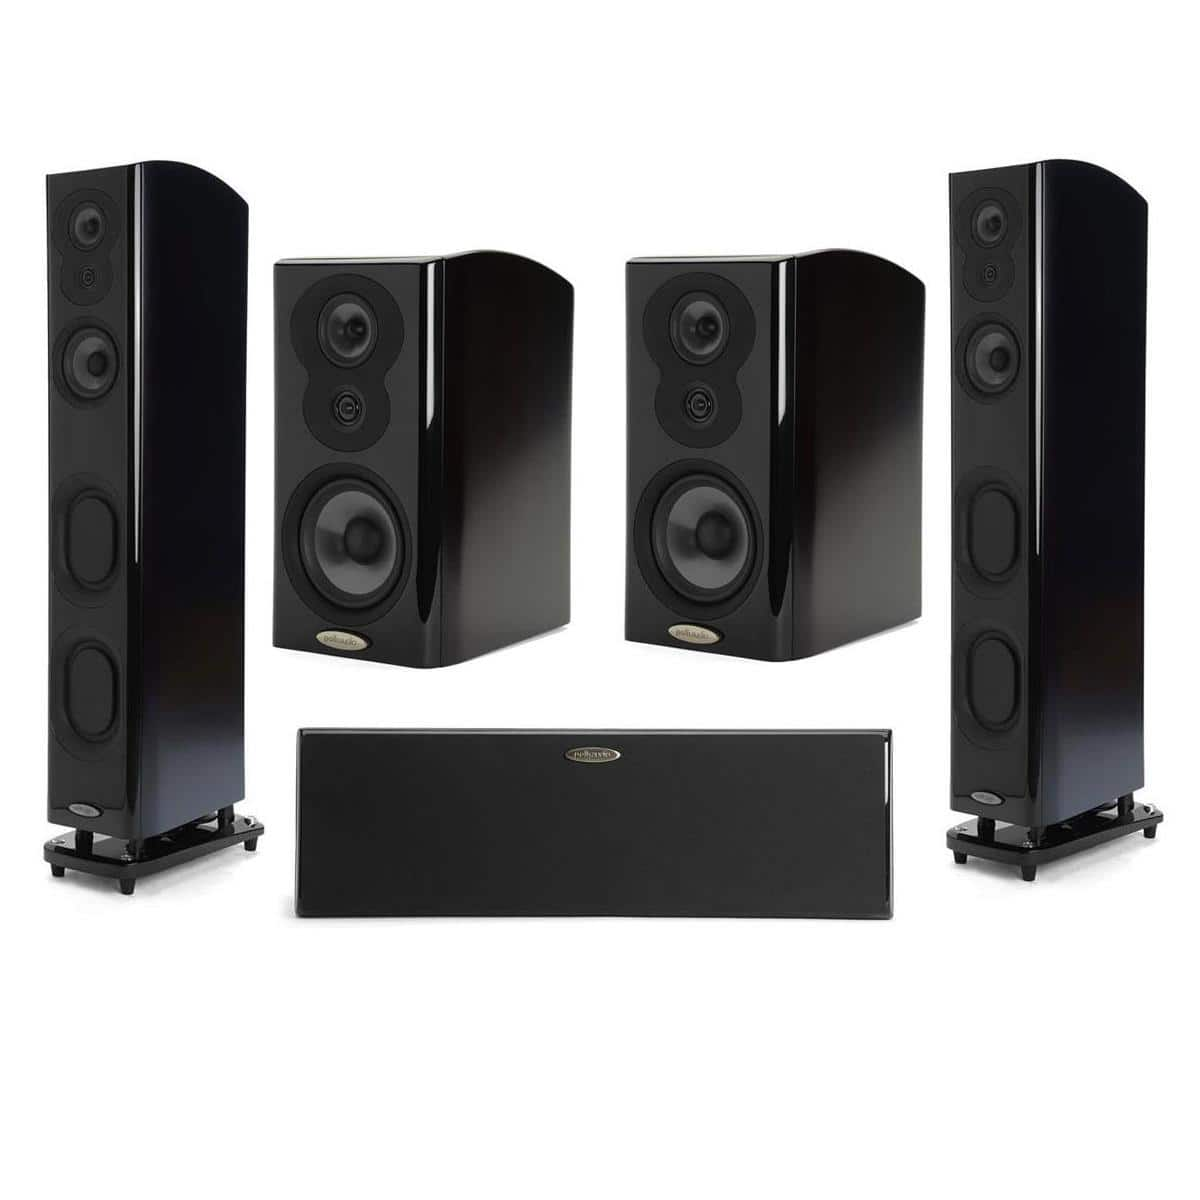 Polk LSI Sale: 2x m705 + 2x m703 + m706 $1499, 2x m707 + 2x m703 + m706 + yamaha RX-A3070 Receiver $2799 + free s/h & More